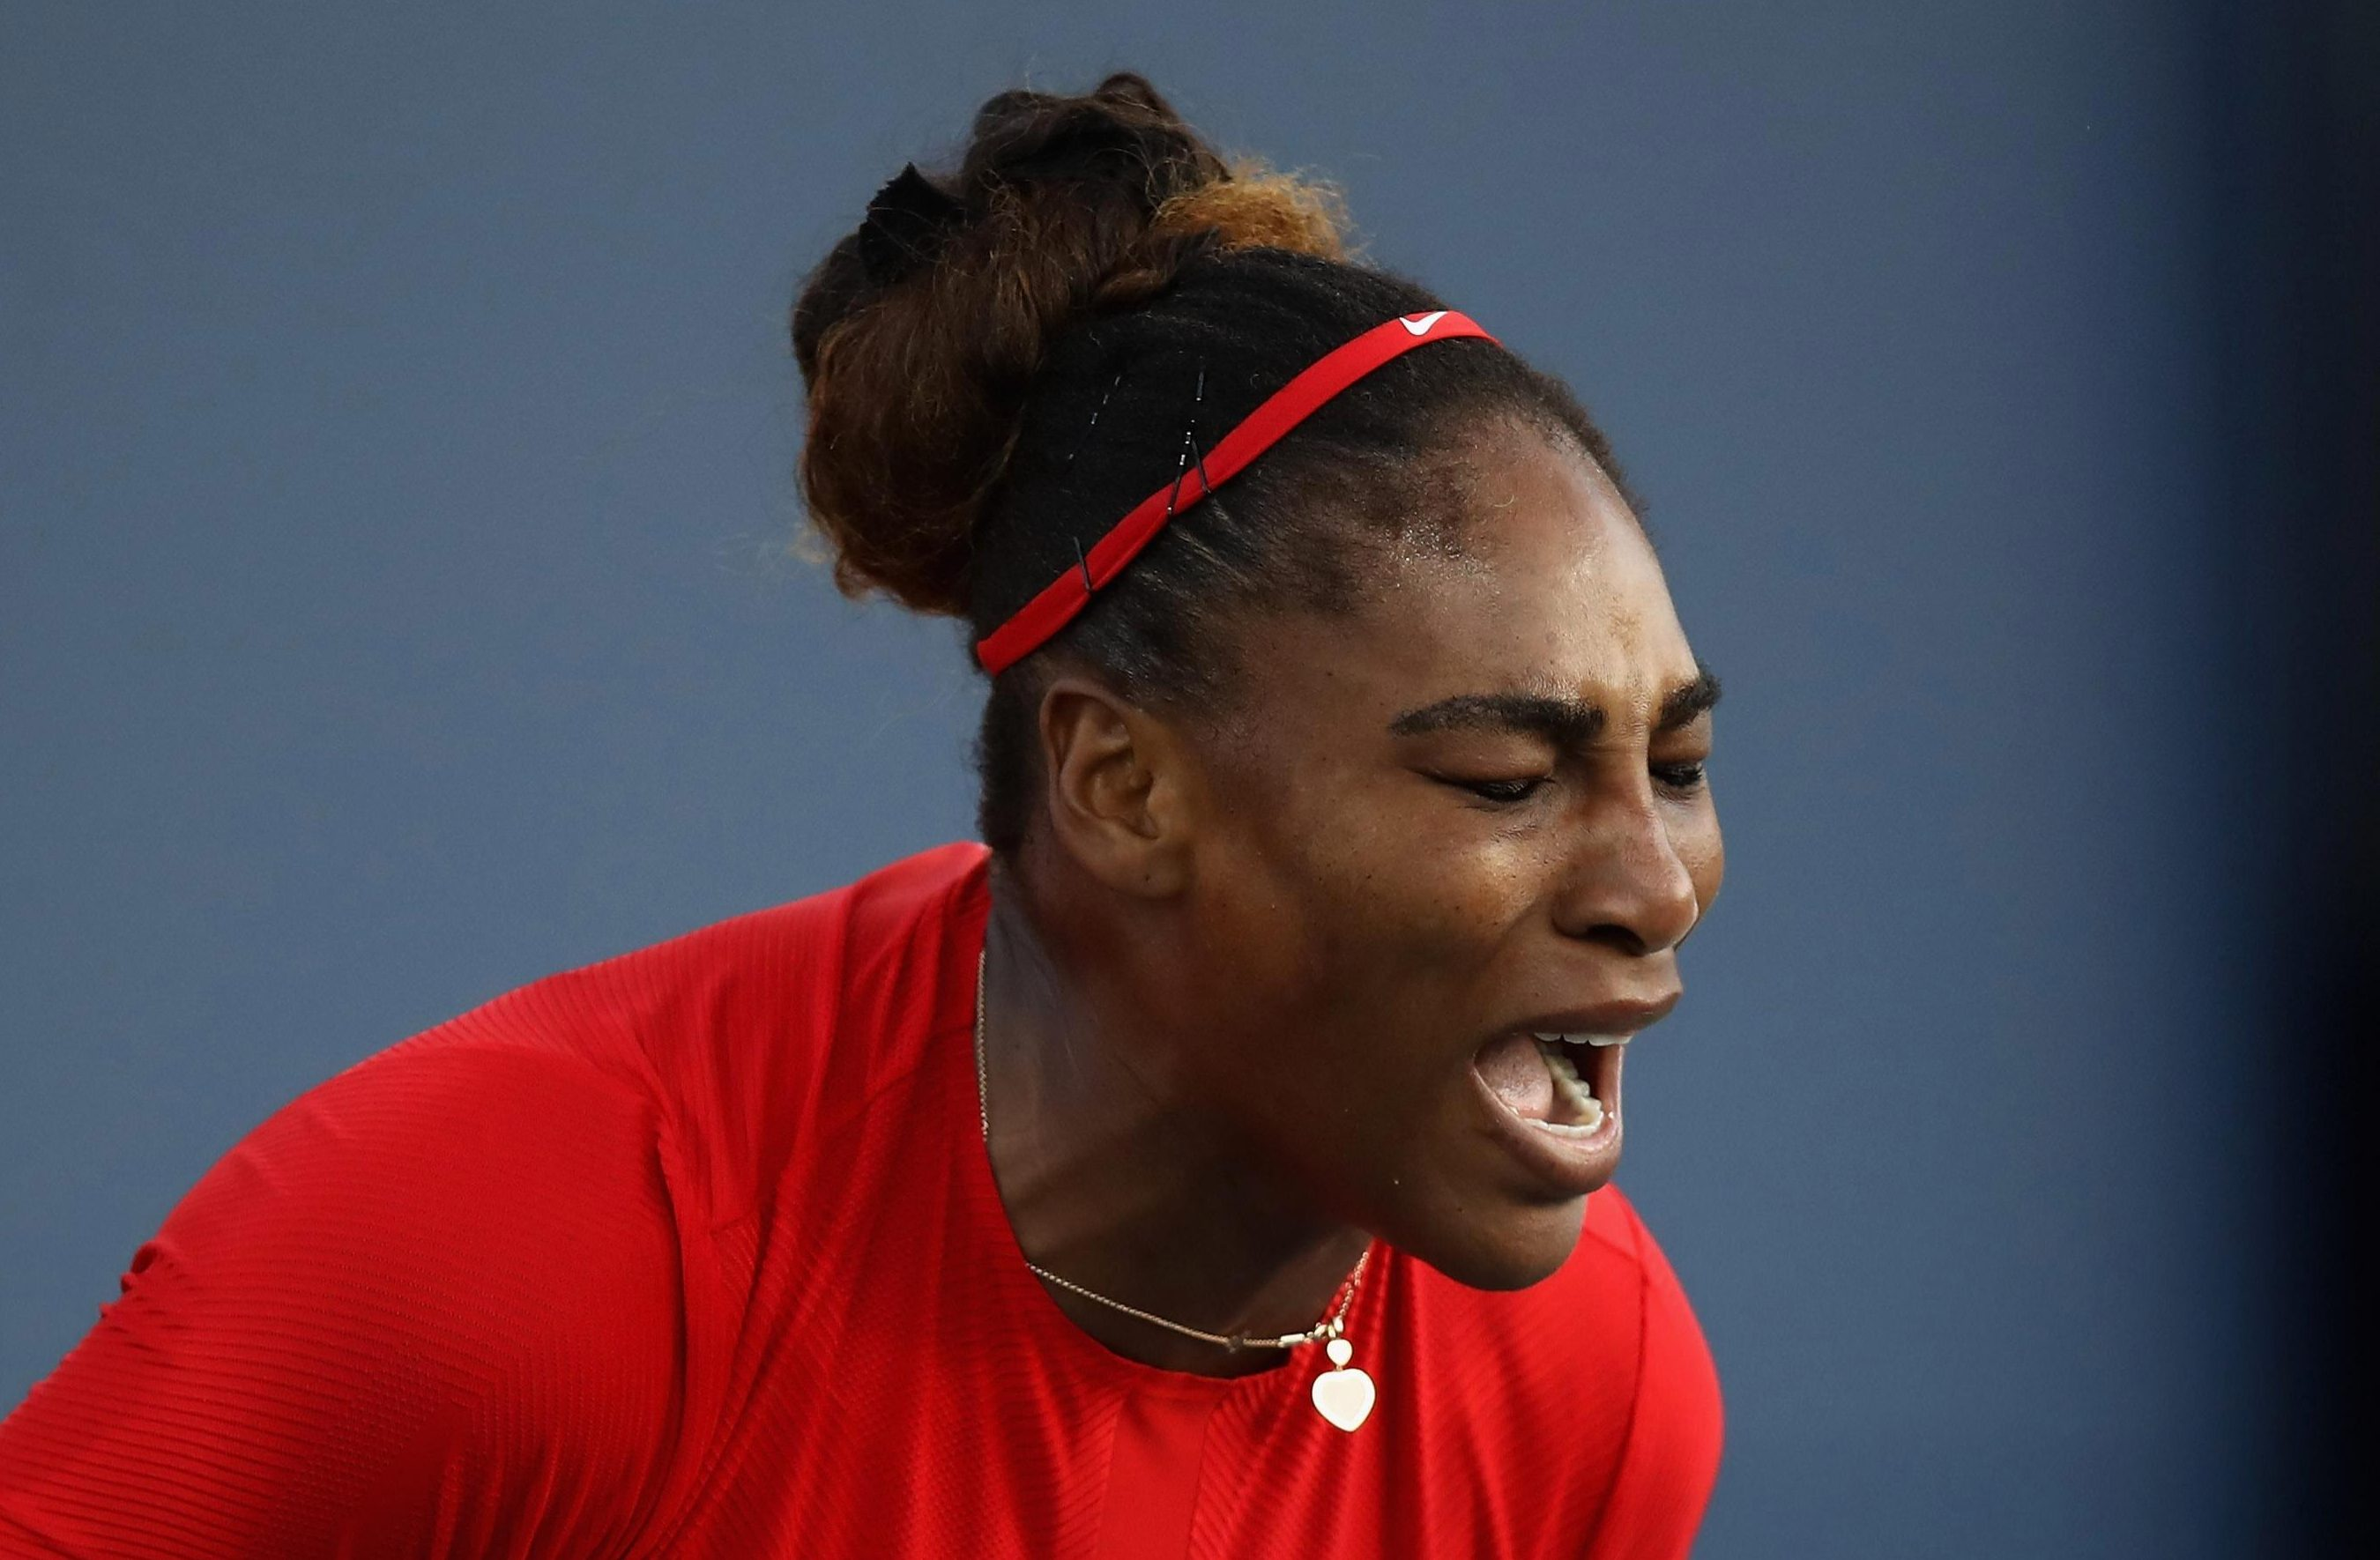 Serena Williams showed her frustration at the defeat to Jo Konta